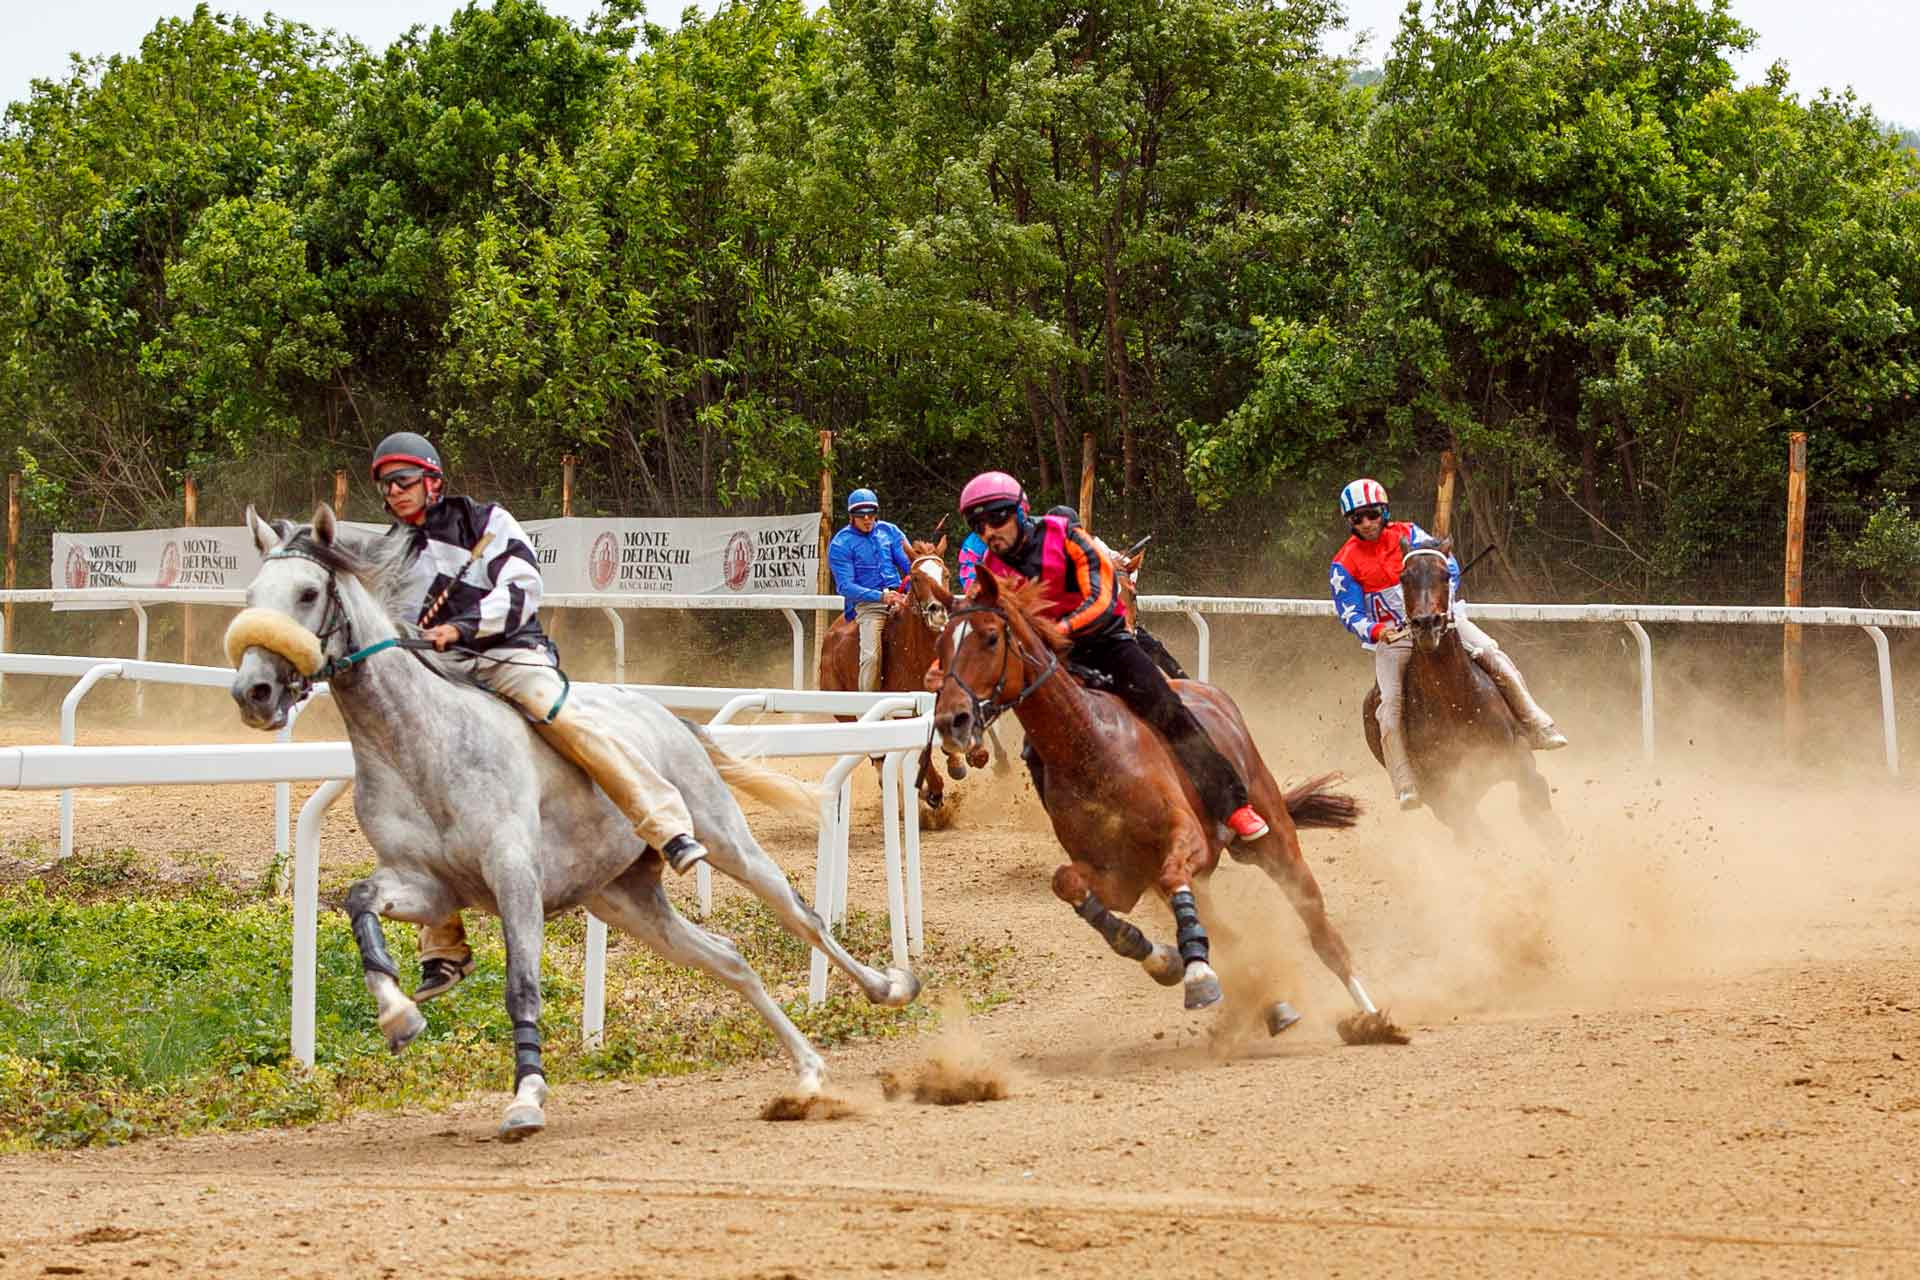 TRAINING TRIAL RUNS - The race allows professionals to check the behavior of the horses on the tuff and on a path characterized by 90 degrees curves and slopes completely identical to those present in Piazza del Campo in Siena.